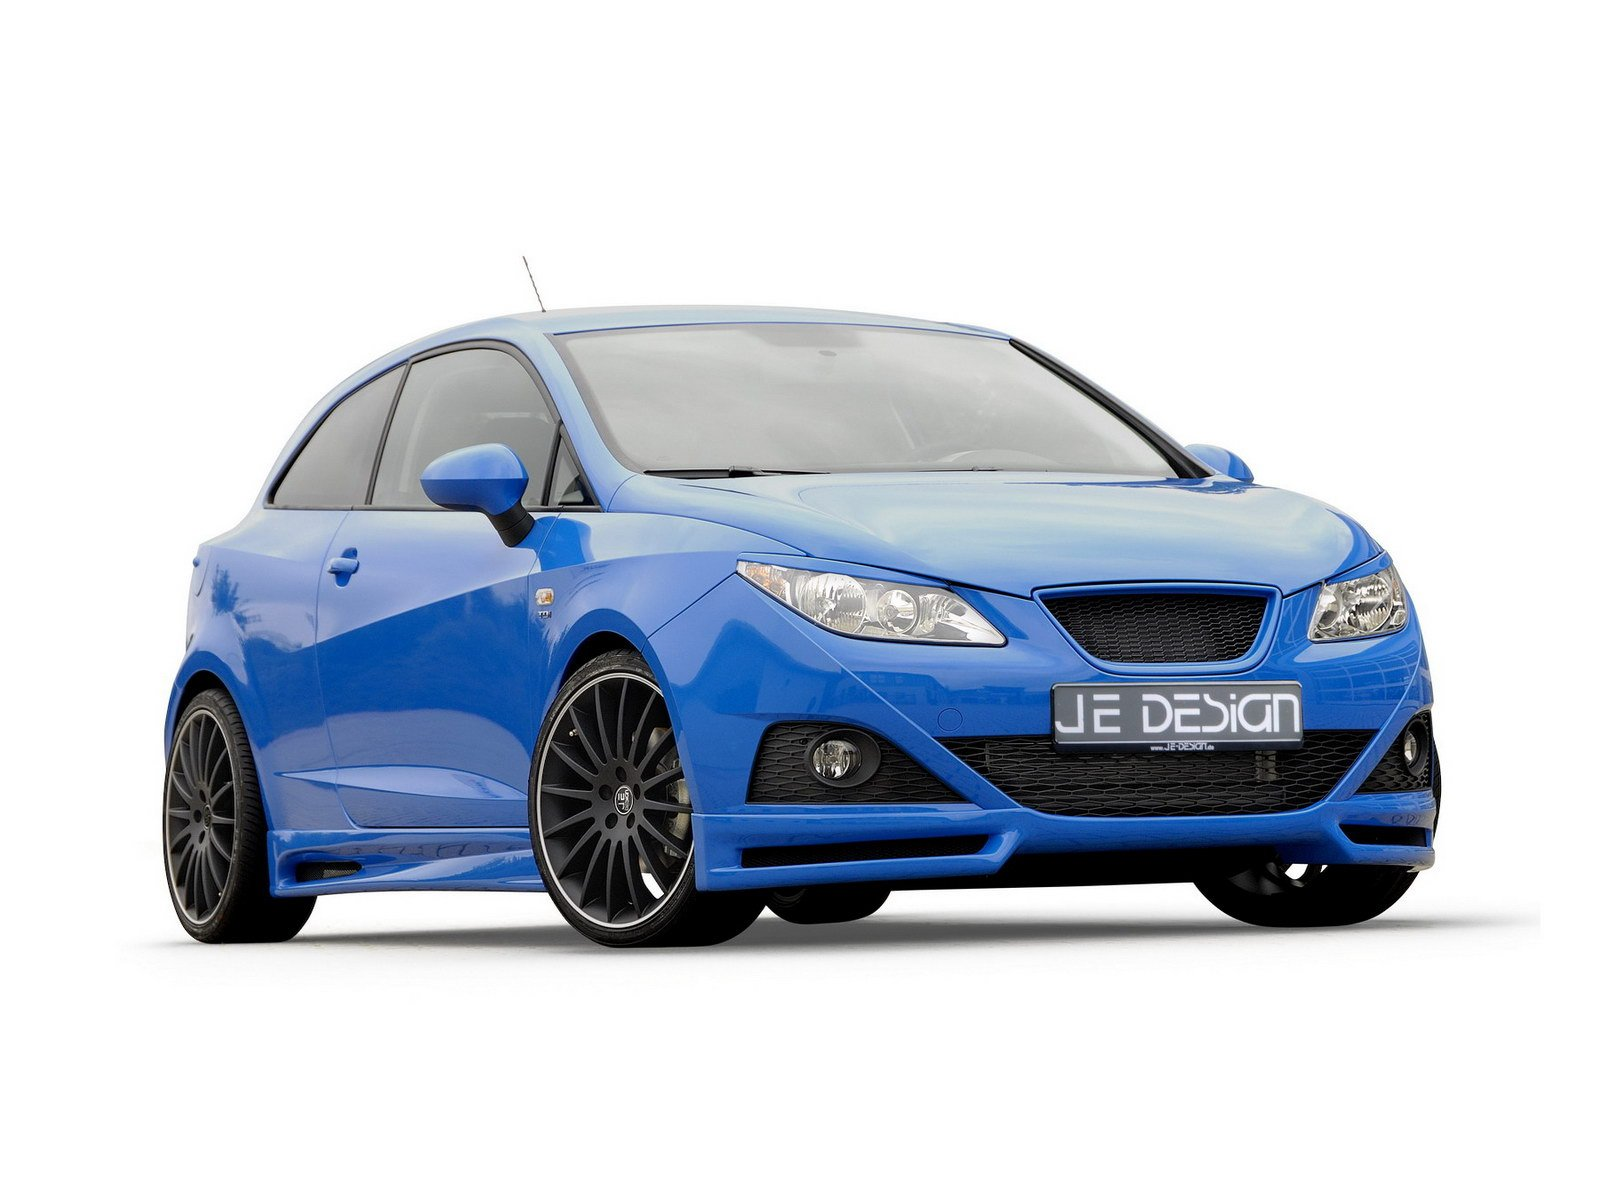 2009 seat ibiza sc pictures information and specs. Black Bedroom Furniture Sets. Home Design Ideas